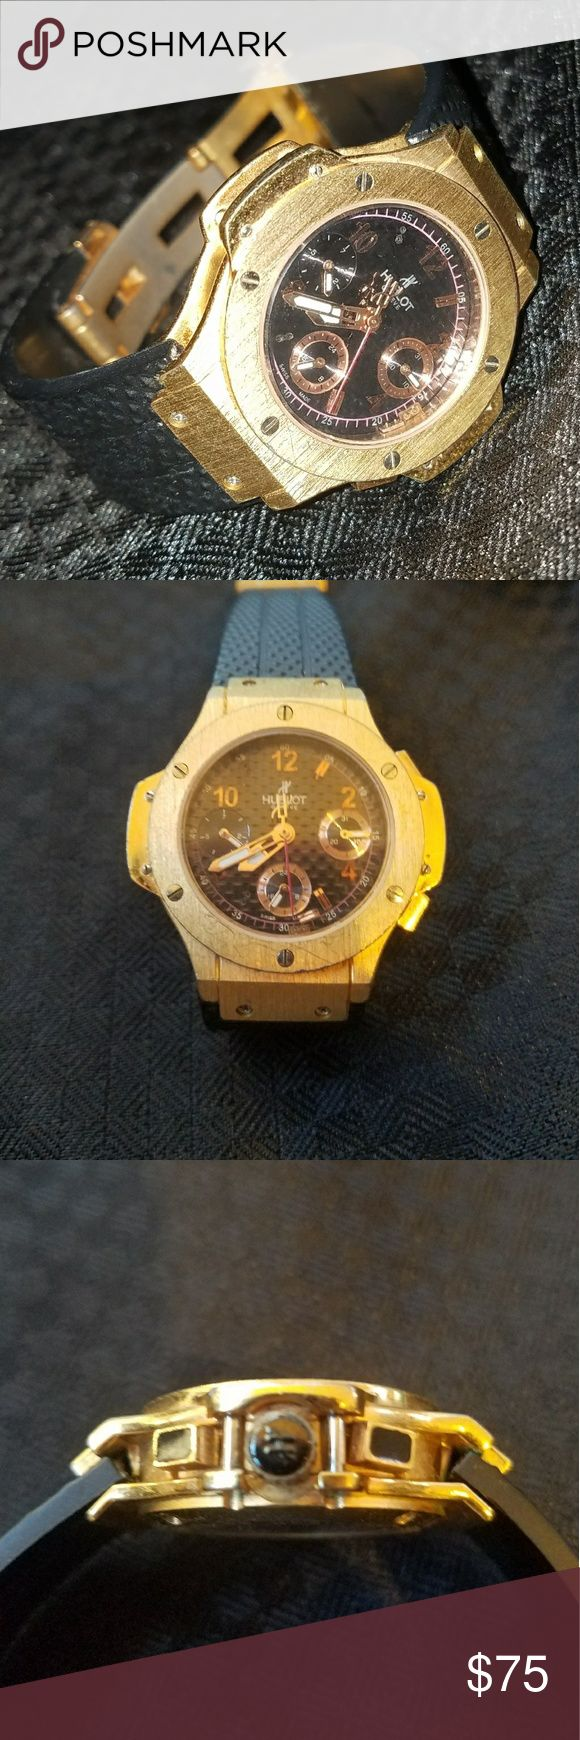 Ladies Watch Swiss Self Winding AAA Hublot This is a great watch. It is an automatic winding watch, which means there is no need for a battery. And the standby time is about 48 hours after wearing. Gliding second hand. Awesome watch, great detail. Hunlot Accessories Watches